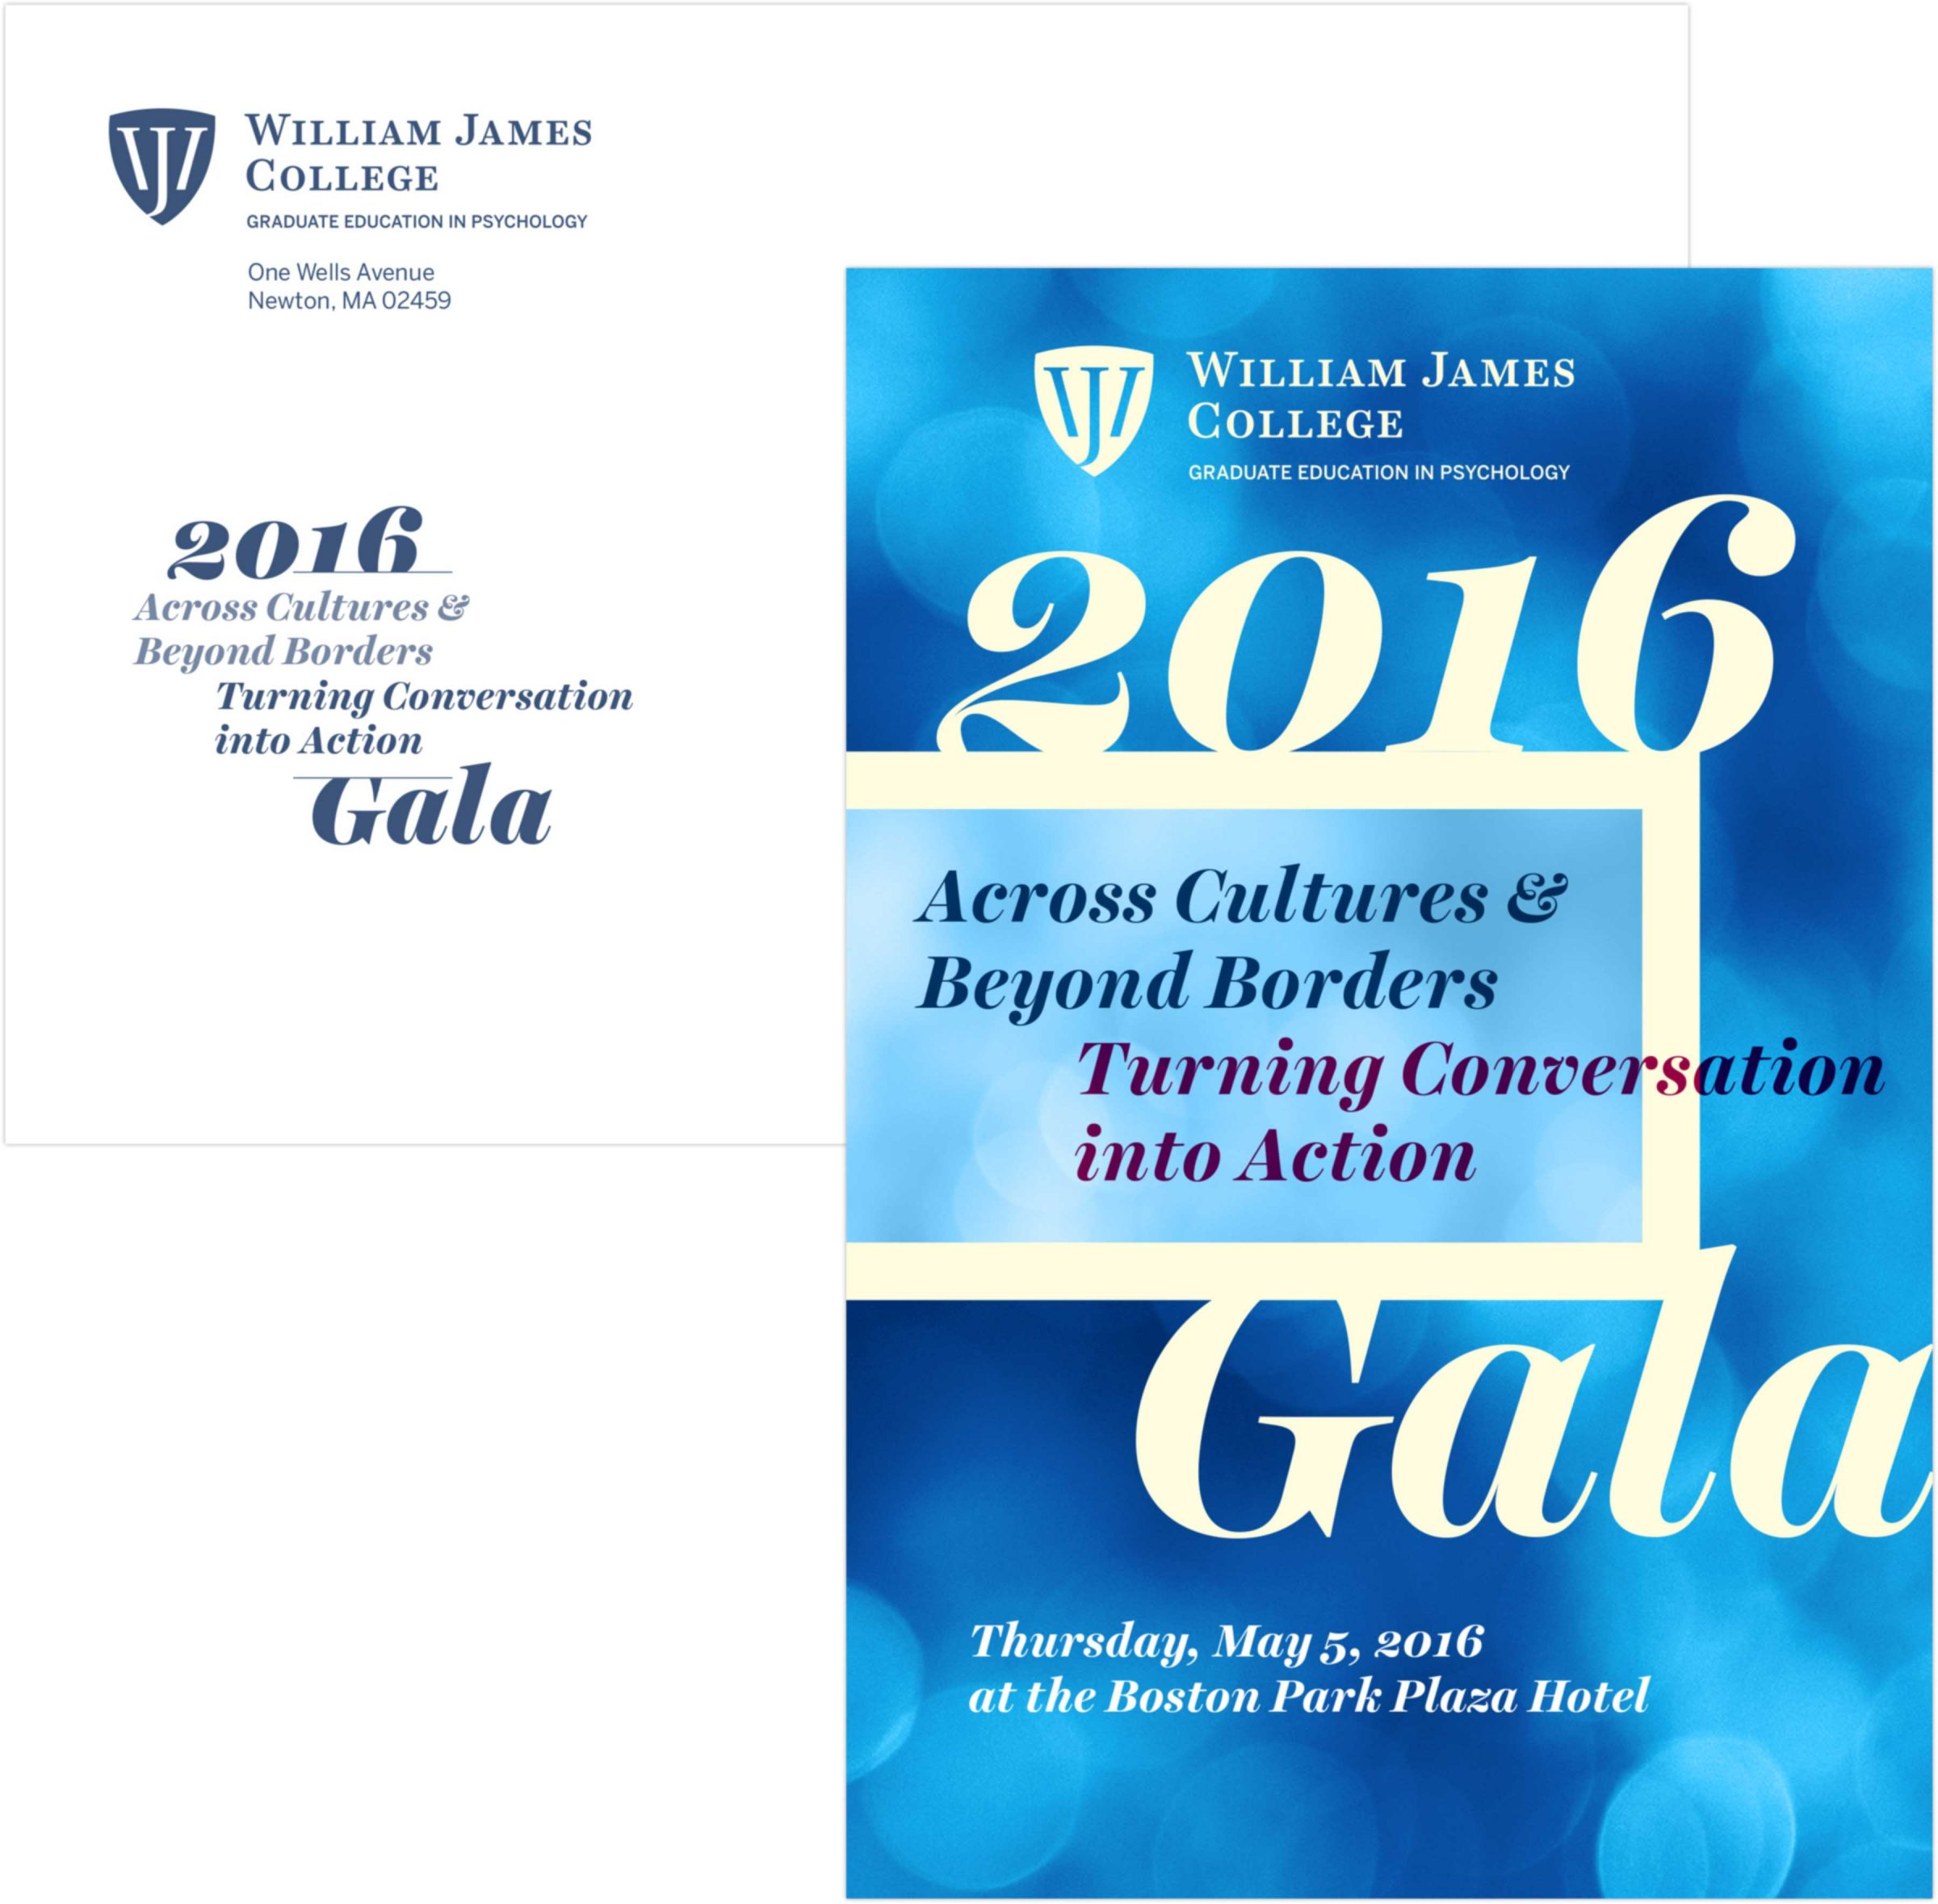 William James College Gala invitation